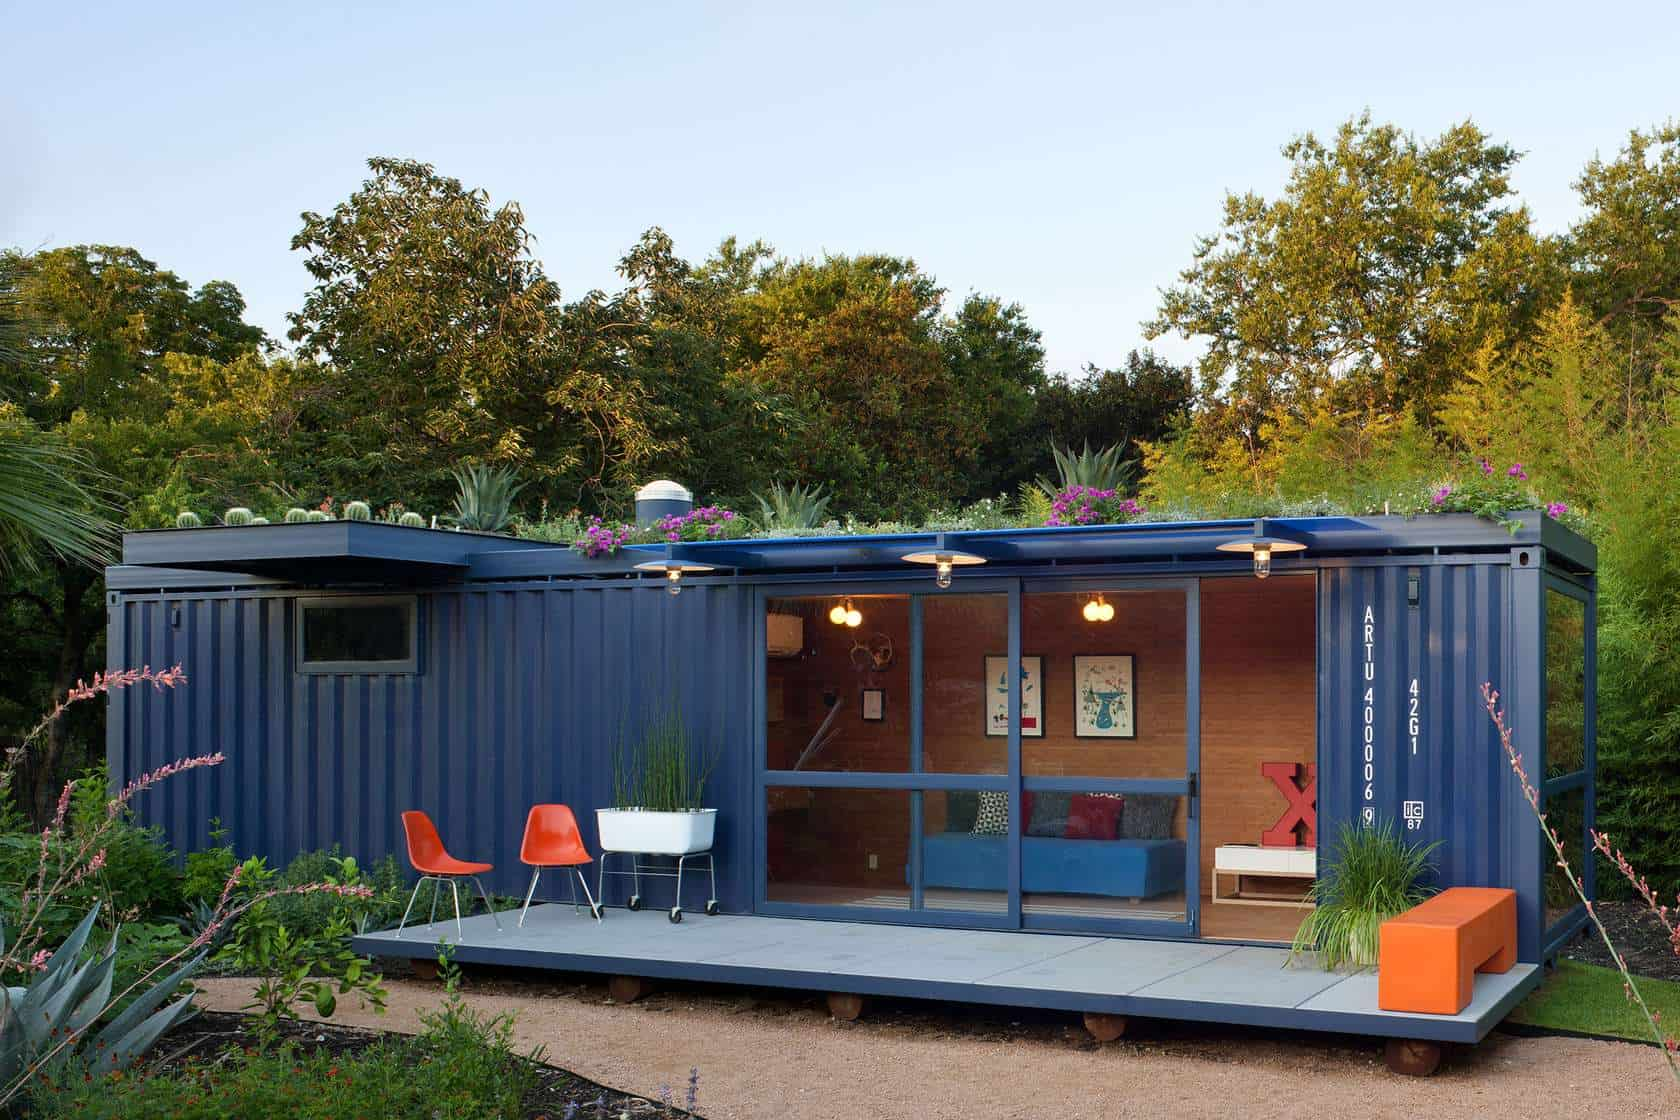 Best Kitchen Gallery: 40 Modern Shipping Container Homes For Every Budget of Prefab Shipping Container Homes For Sale  on rachelxblog.com